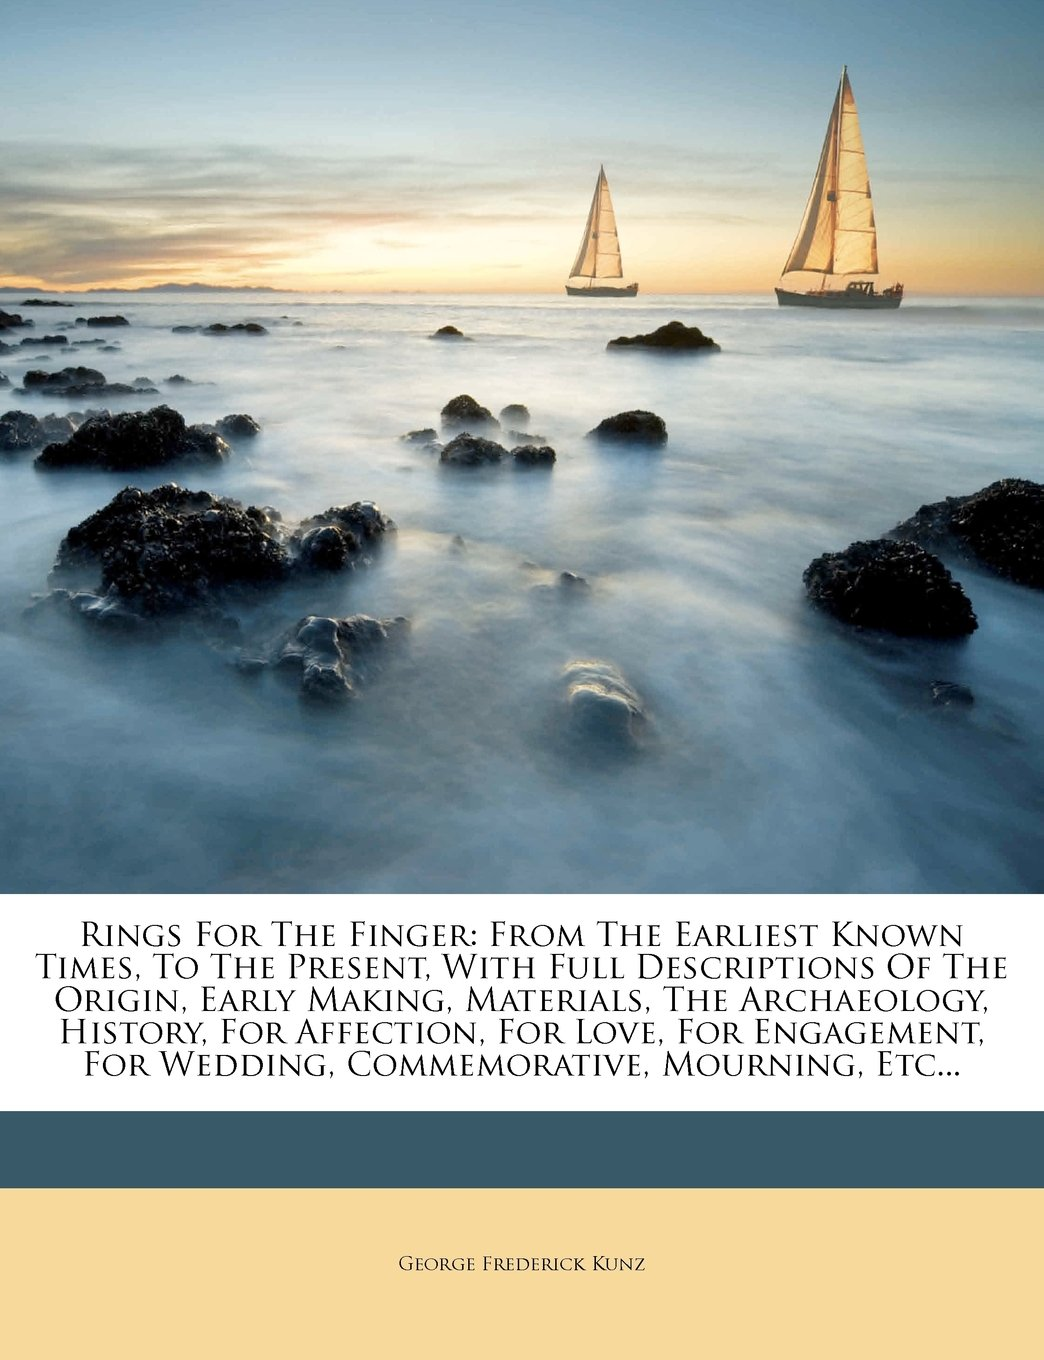 Download Rings For The Finger: From The Earliest Known Times, To The Present, With Full Descriptions Of The Origin, Early Making, Materials, The Archaeology, ... For Wedding, Commemorative, Mourning, Etc... pdf